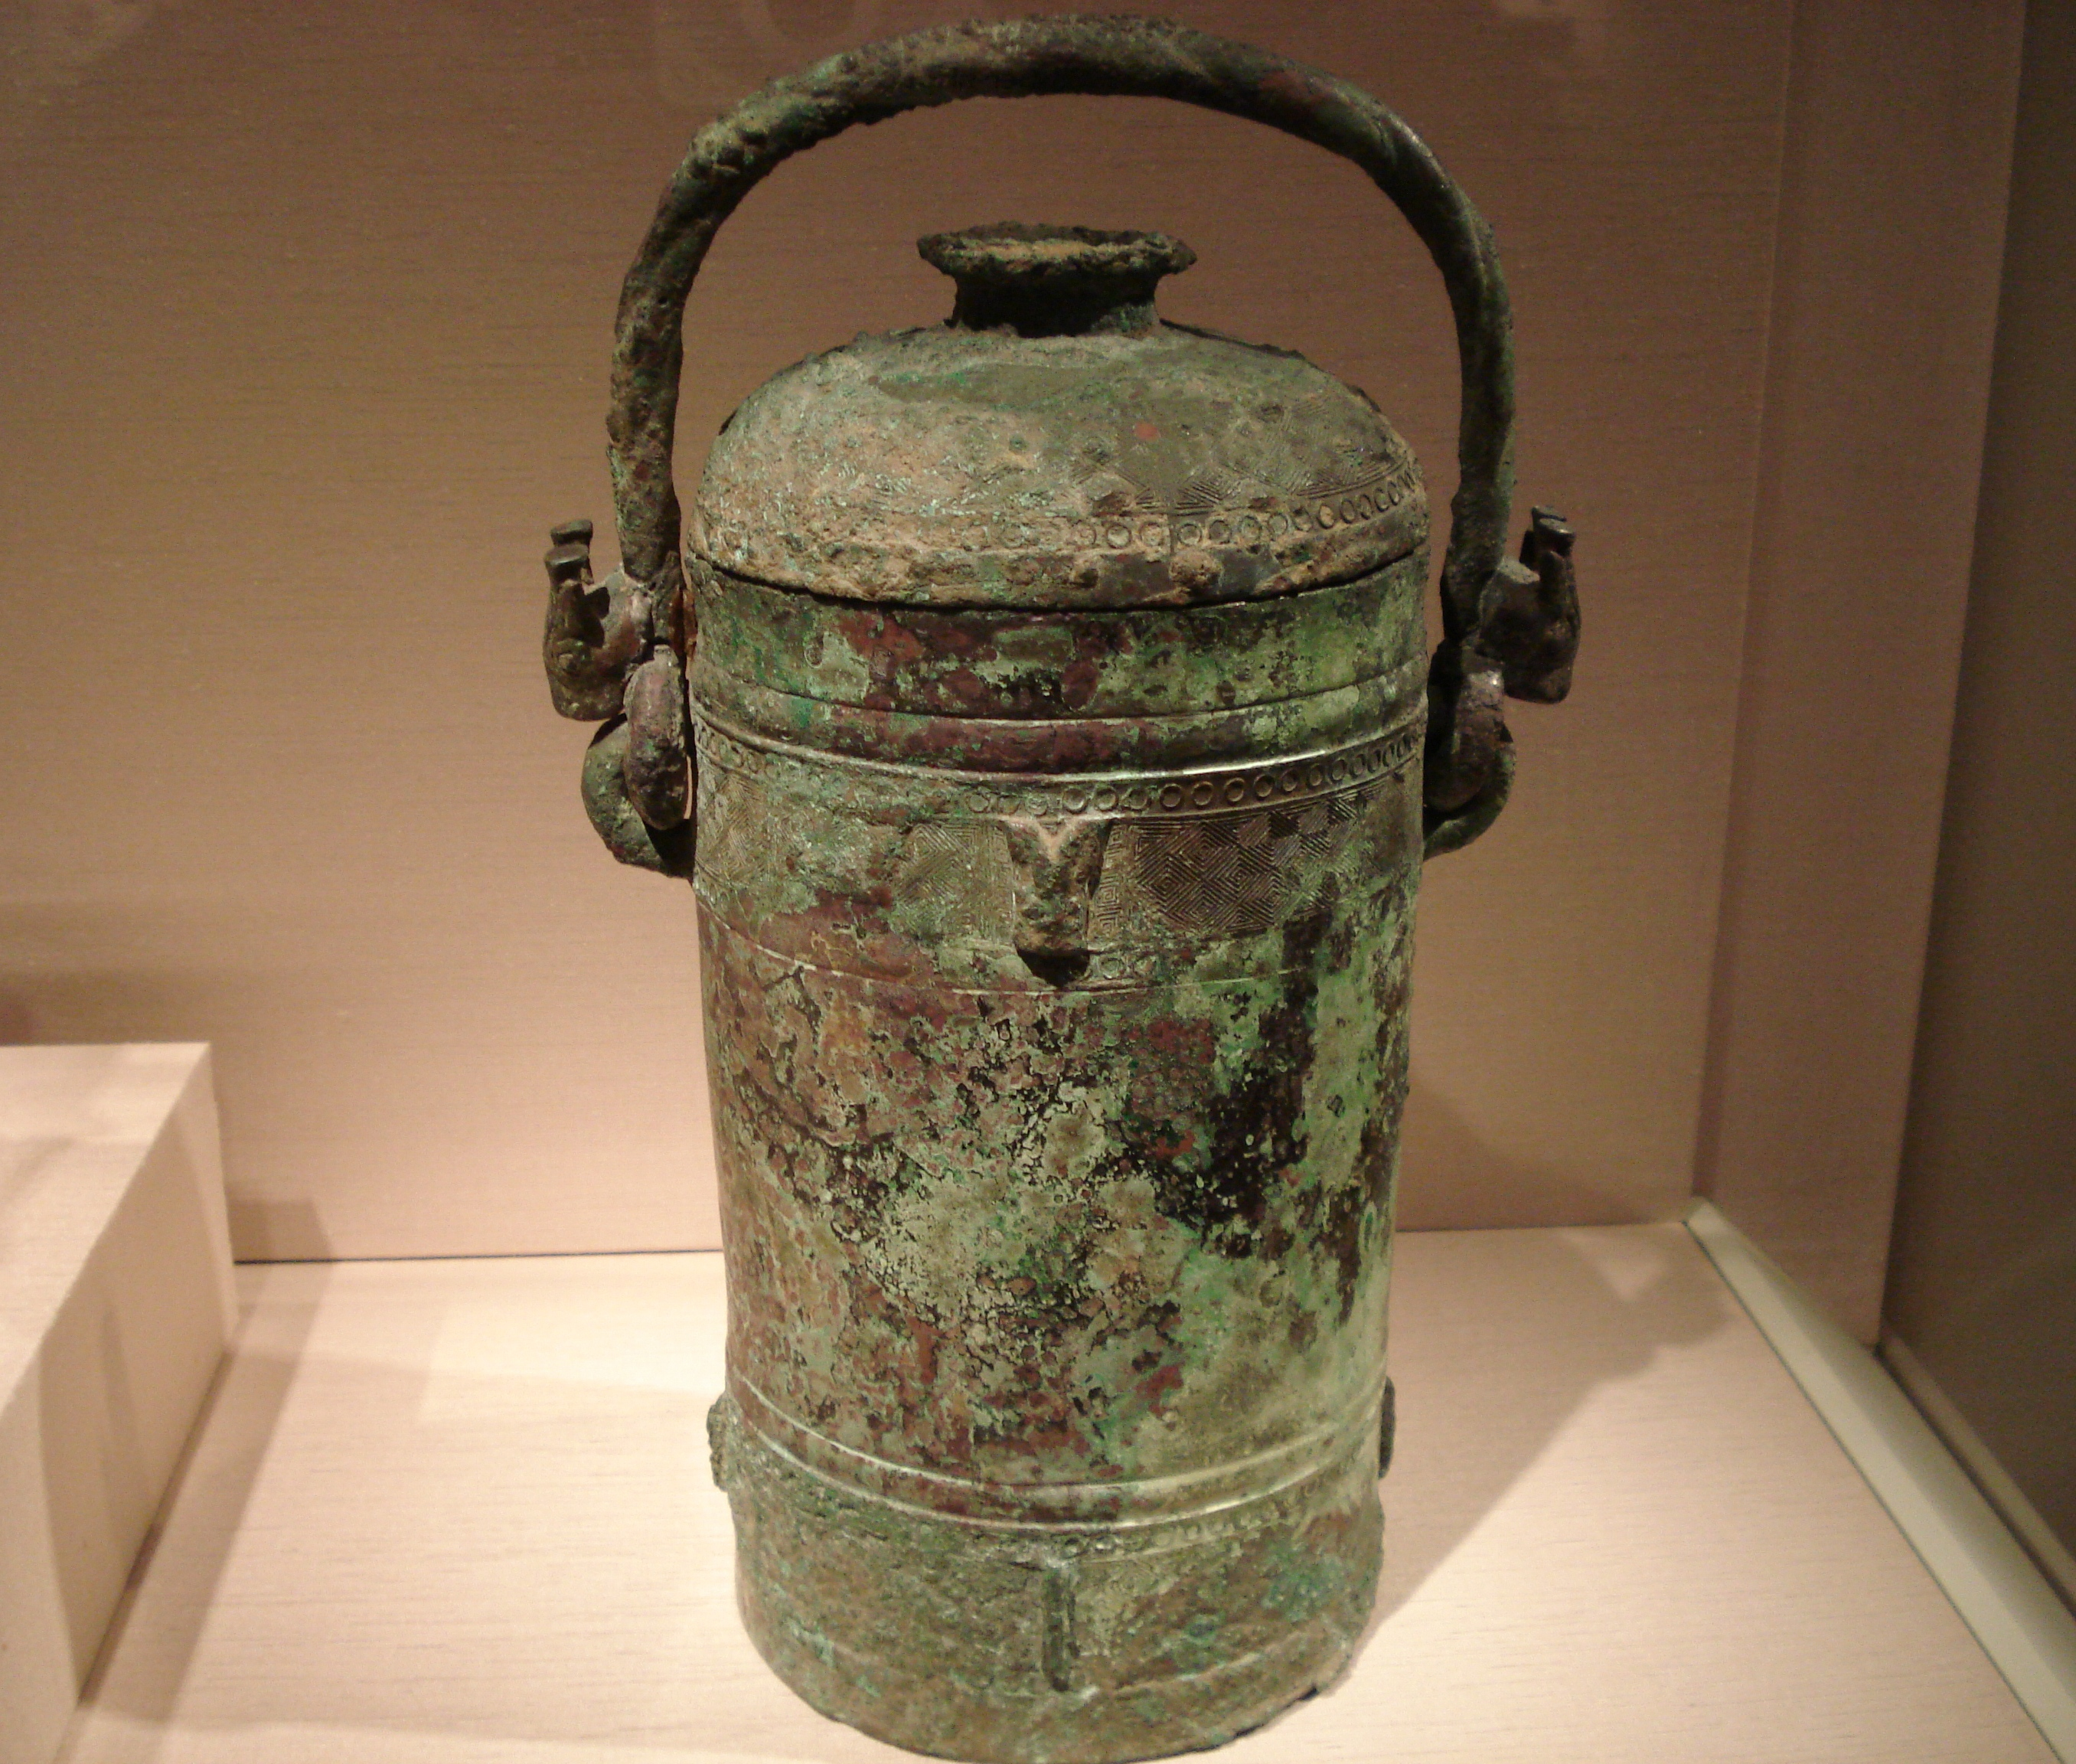 File:Ritual wine container with handle, Shang Dynasty.jpg ...